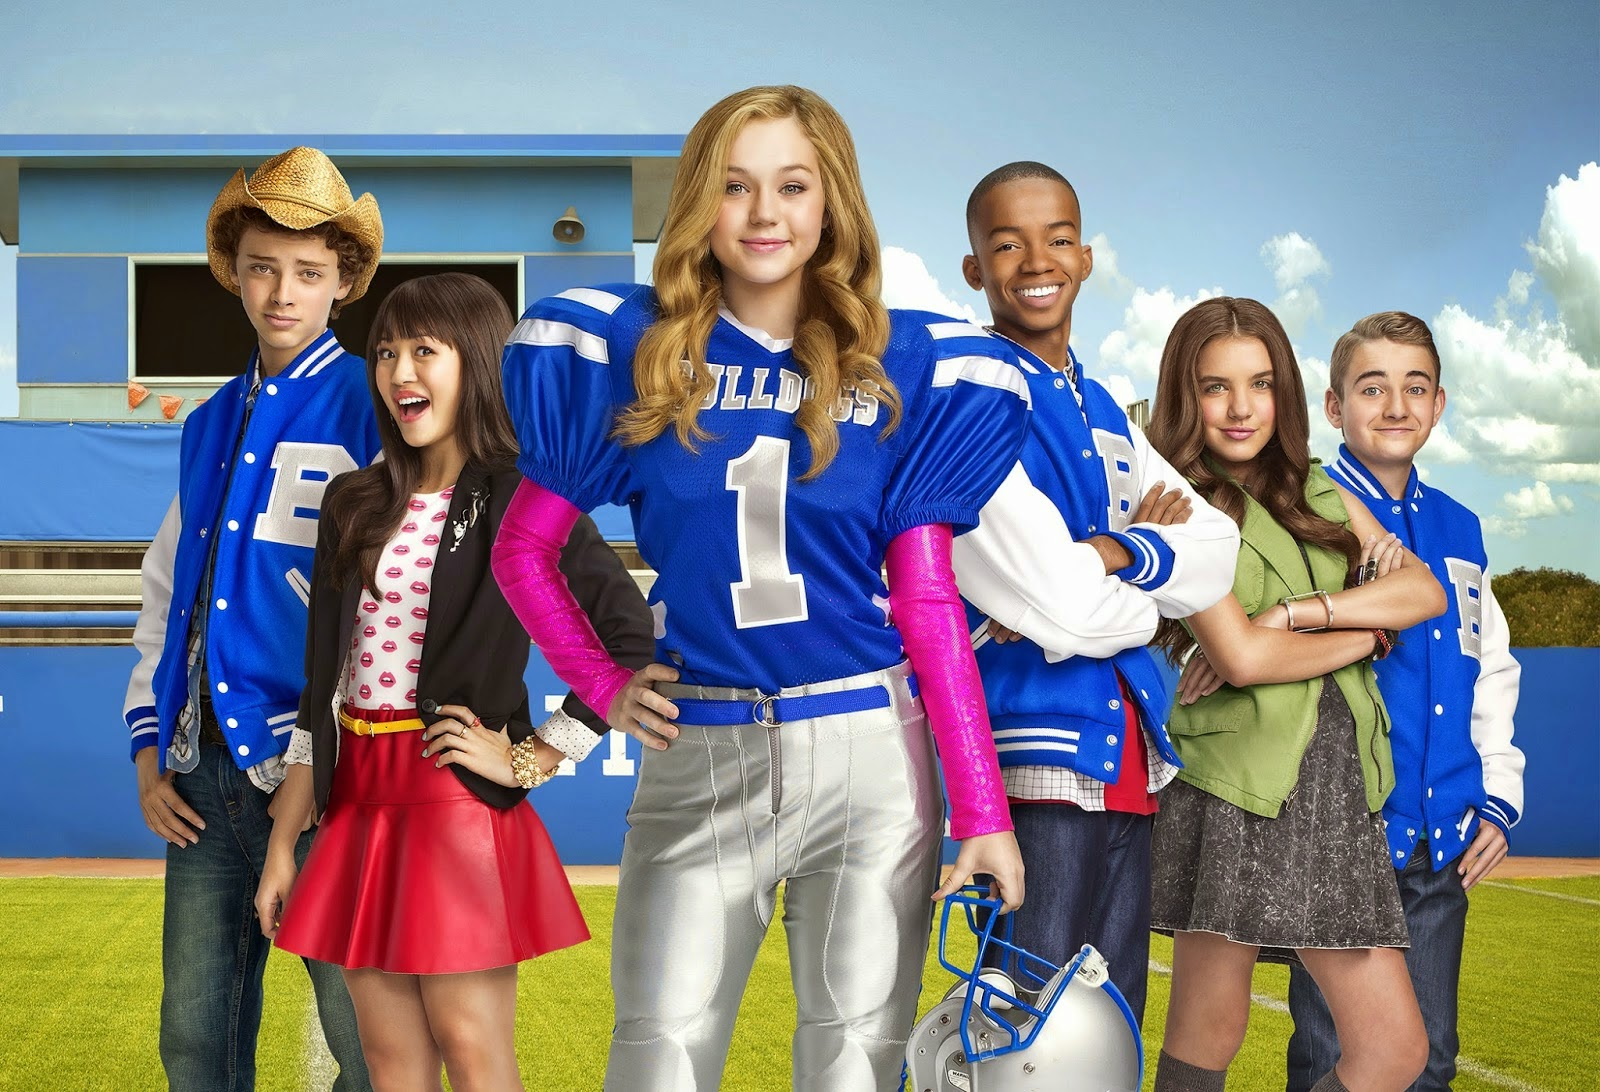 New show bella and the bulldogs expected tx mid 2015